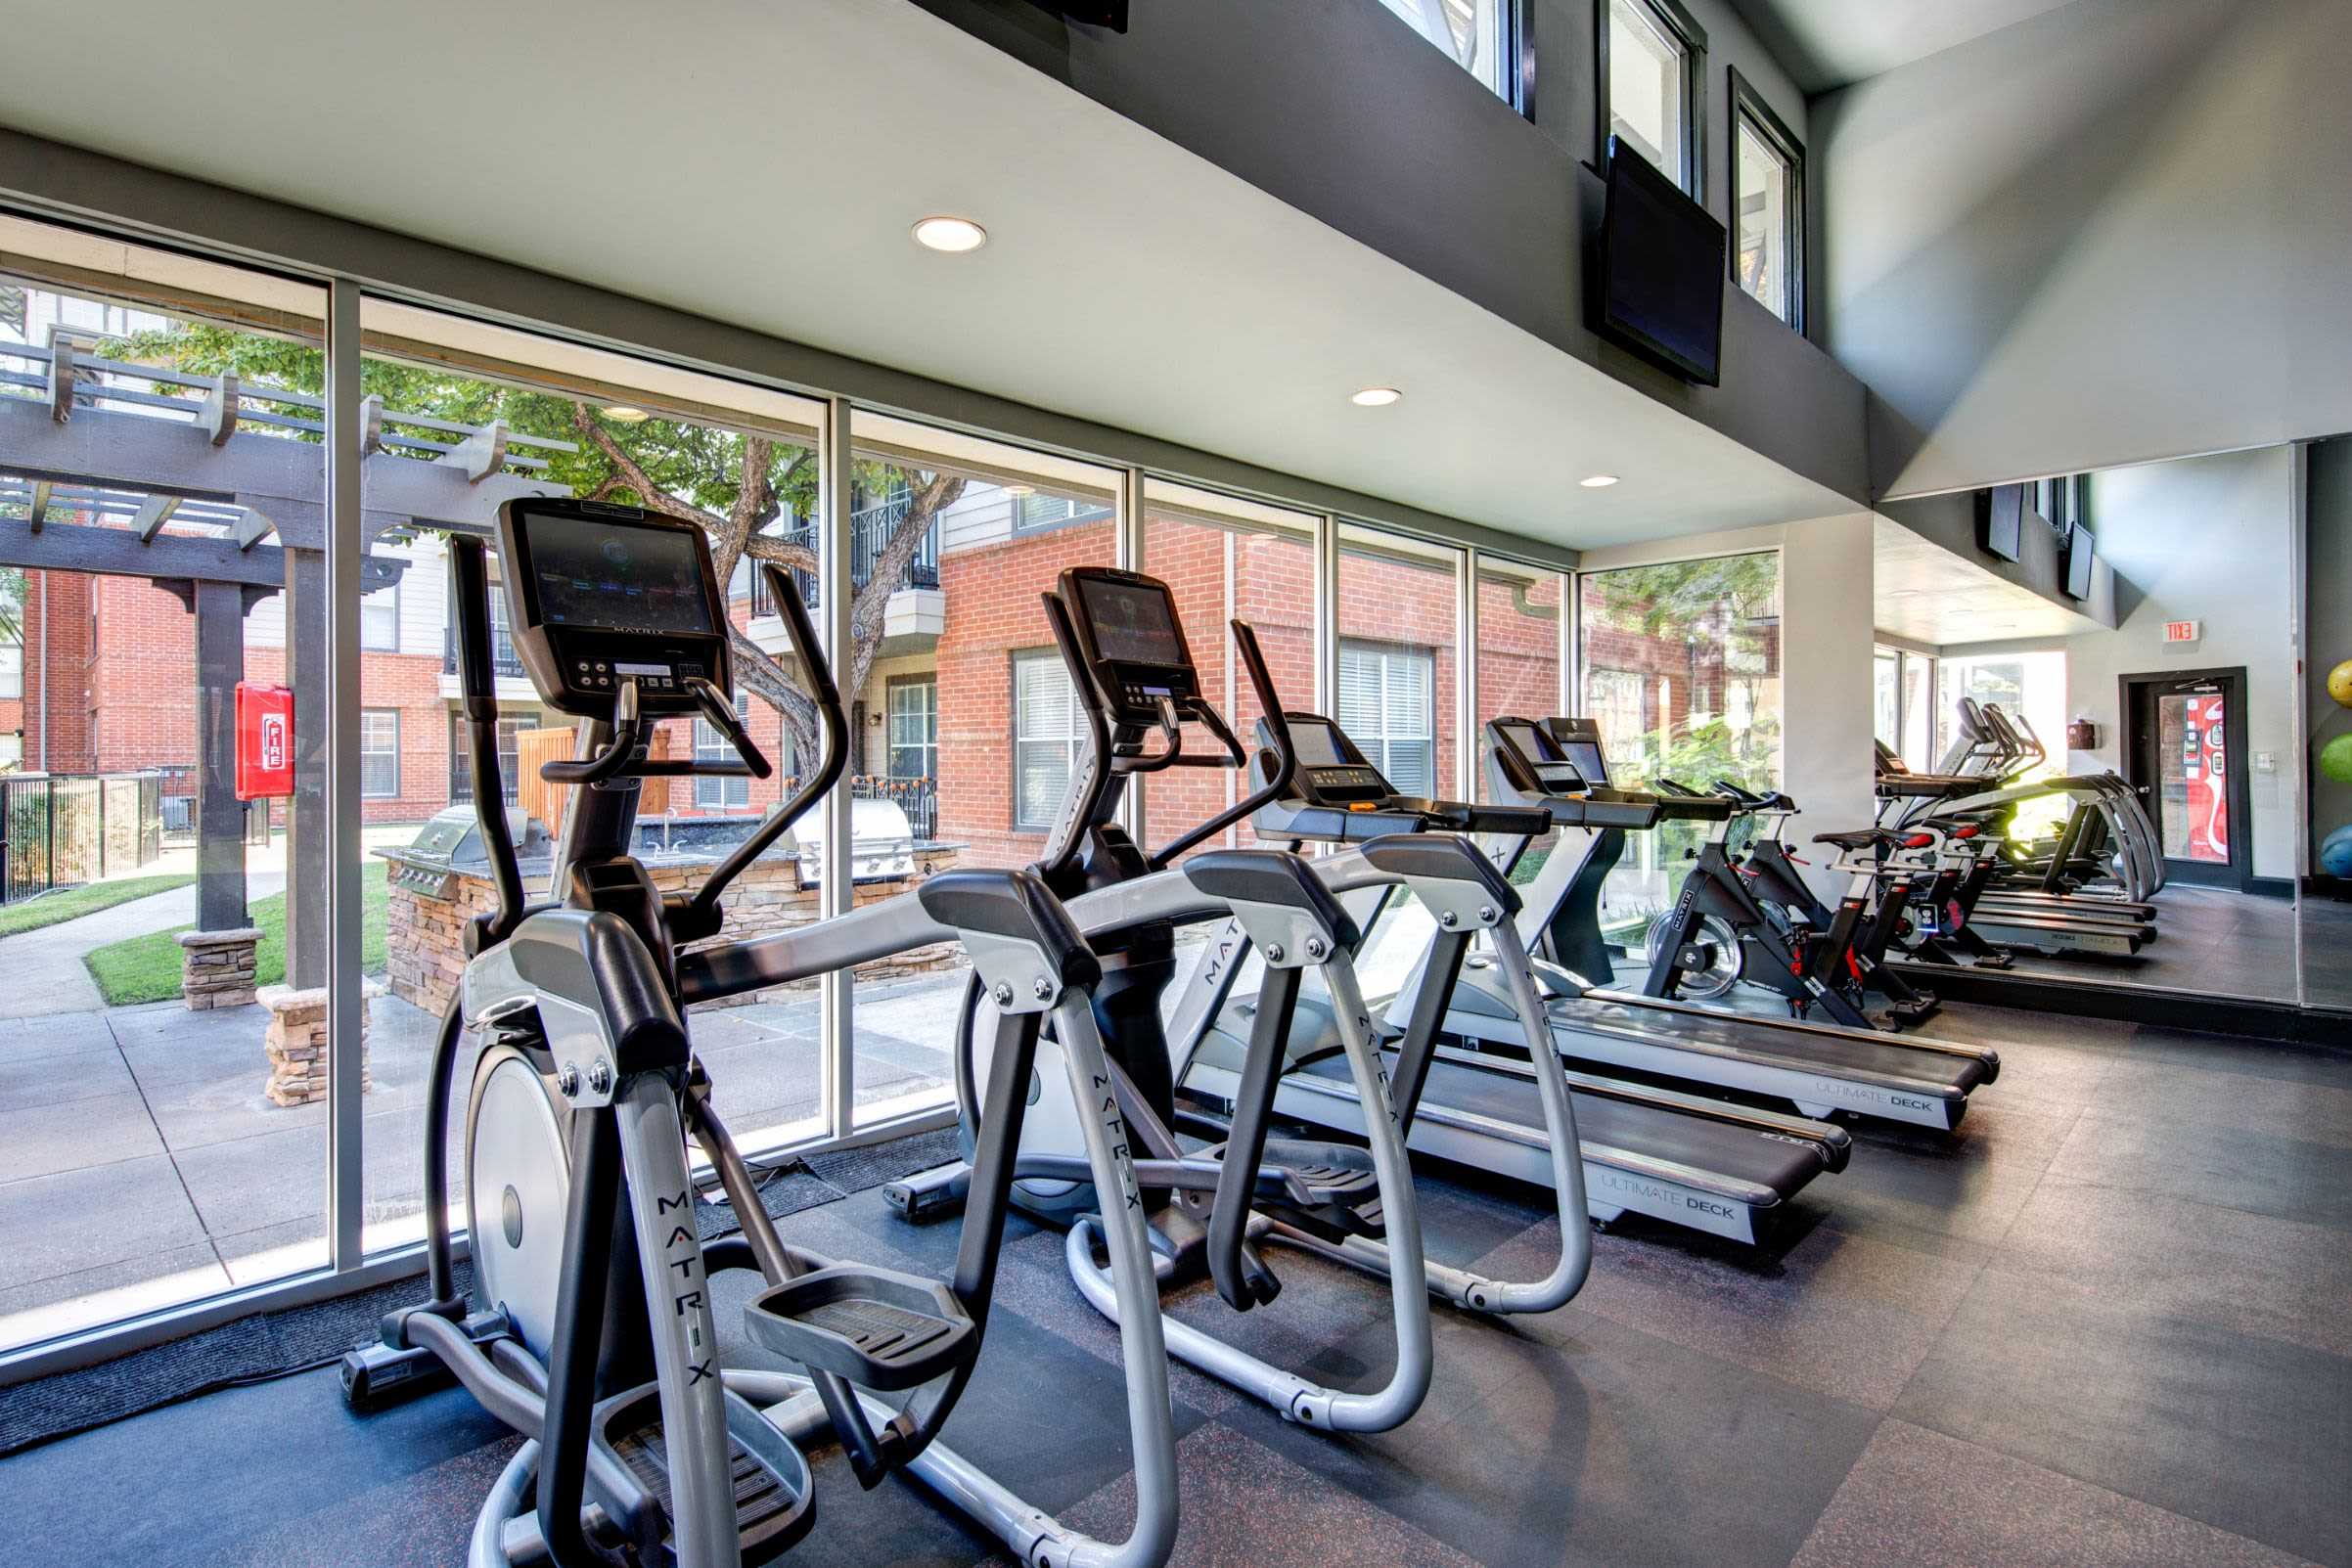 Cardio machines lined up near floor to ceiling windows at Marquis on Gaston in Dallas, Texas